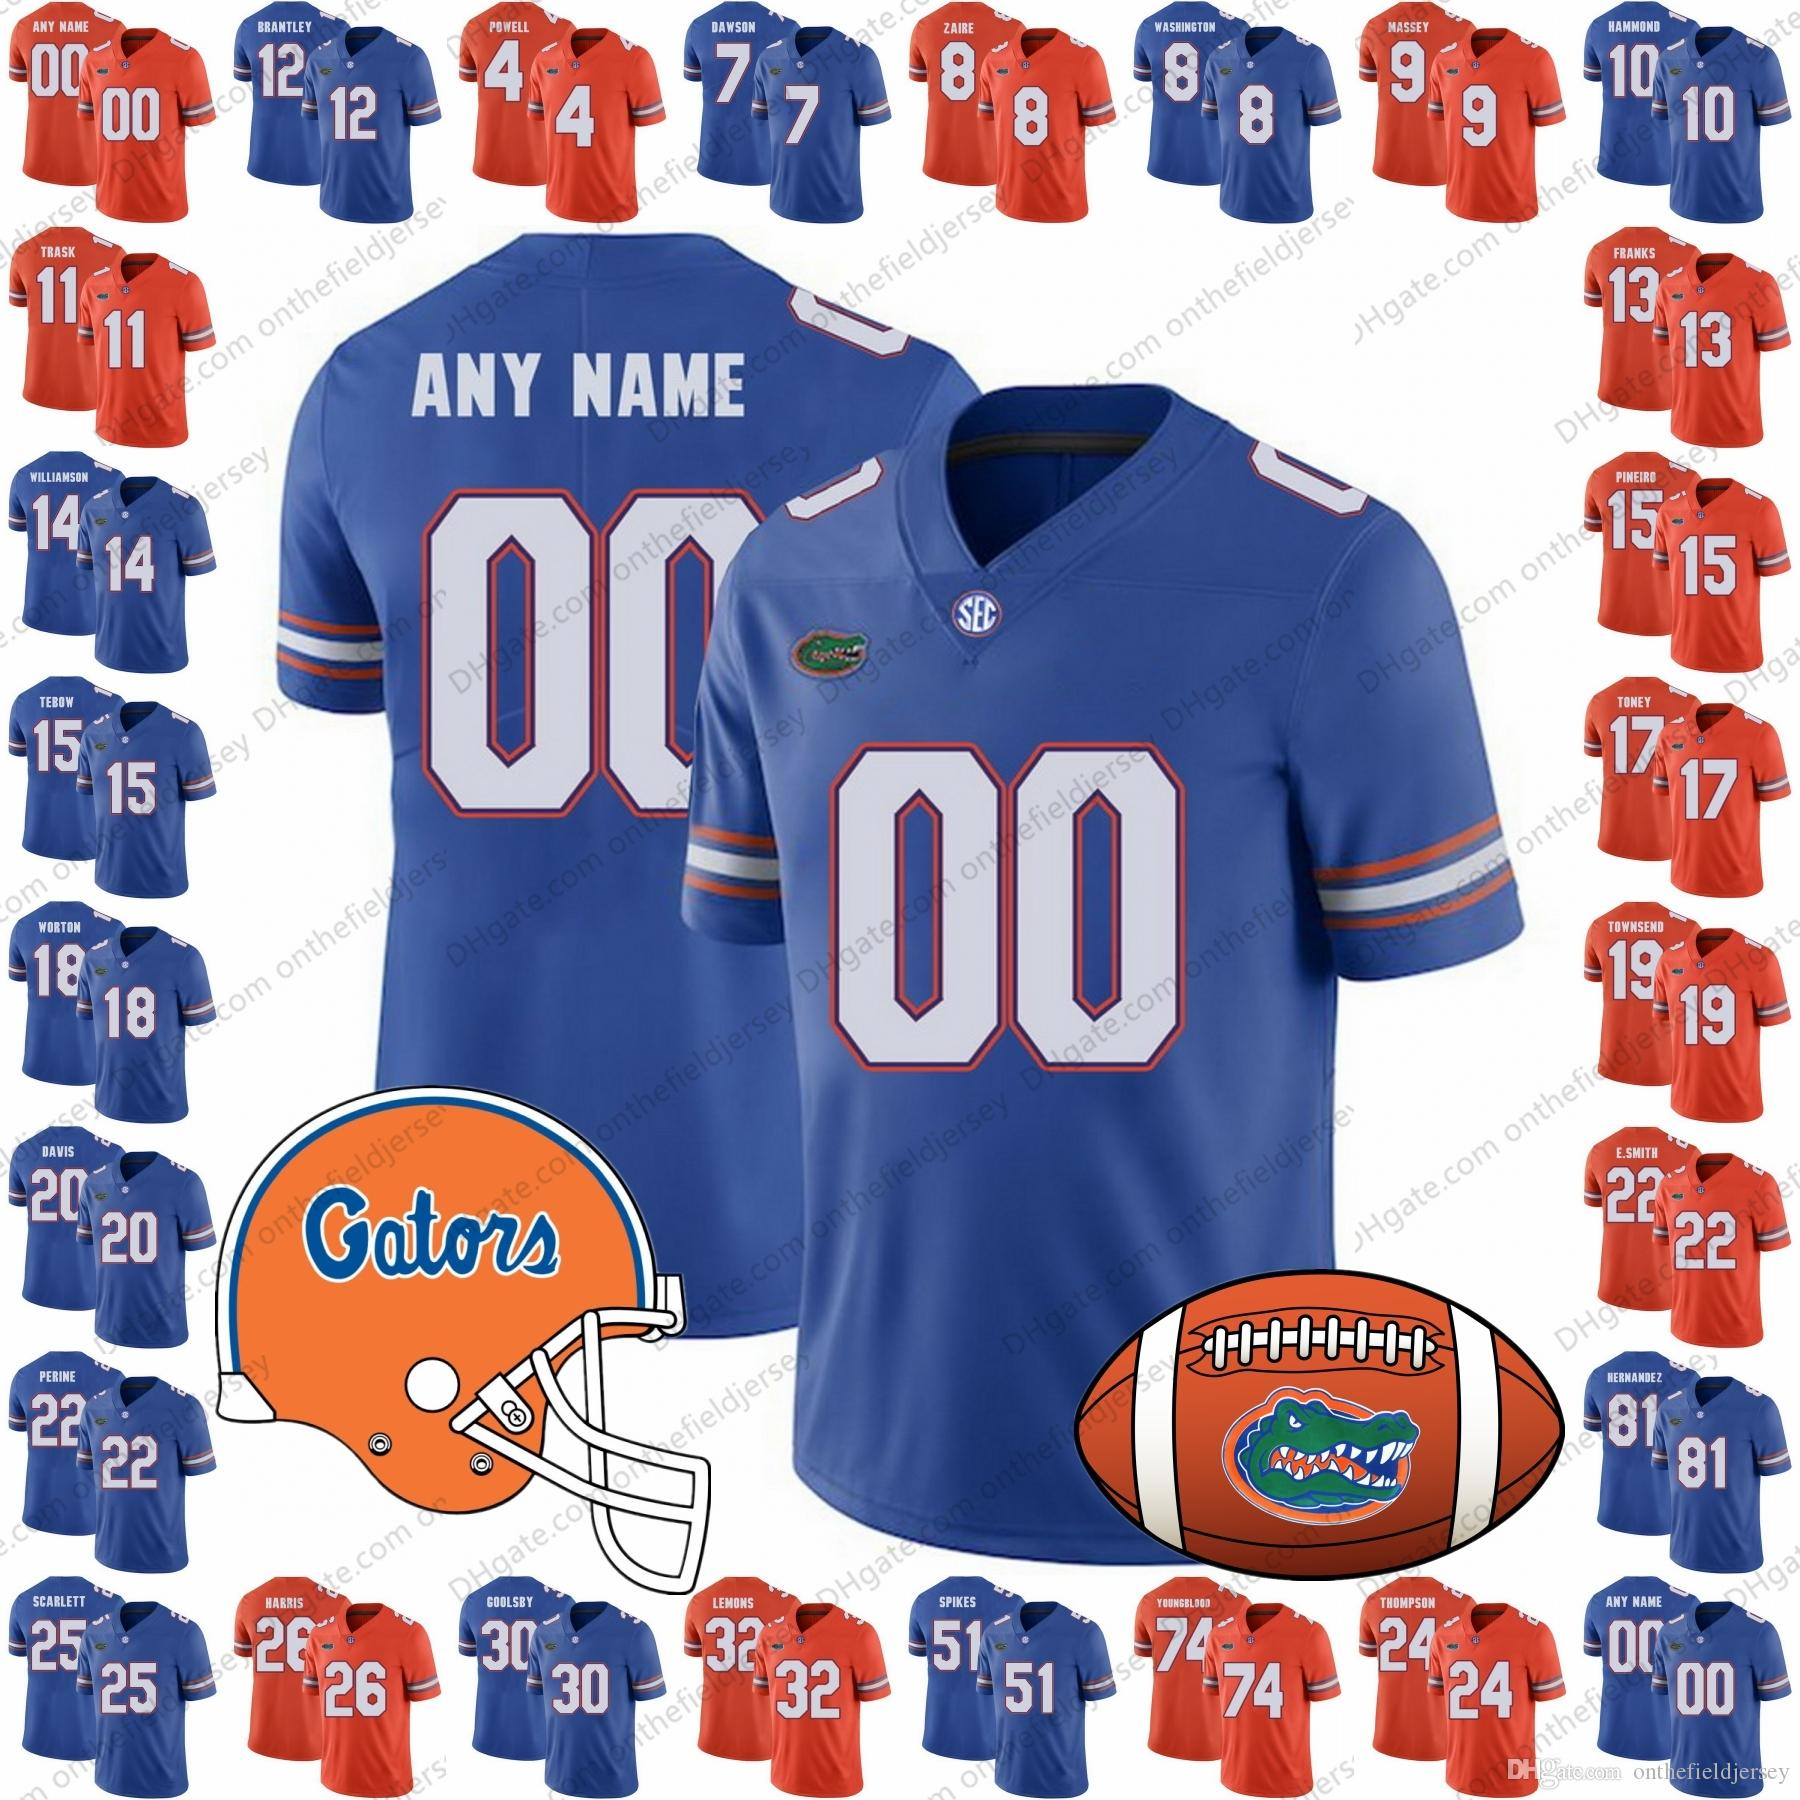 size 40 3f2a0 6c570 Custom Florida Gators 2018 NEW BRAND JUMP College Football Jerseys Any Name  Number Orange Blue NCAA #15 Tim Tebow 22 Emmitt Smith S-3XL